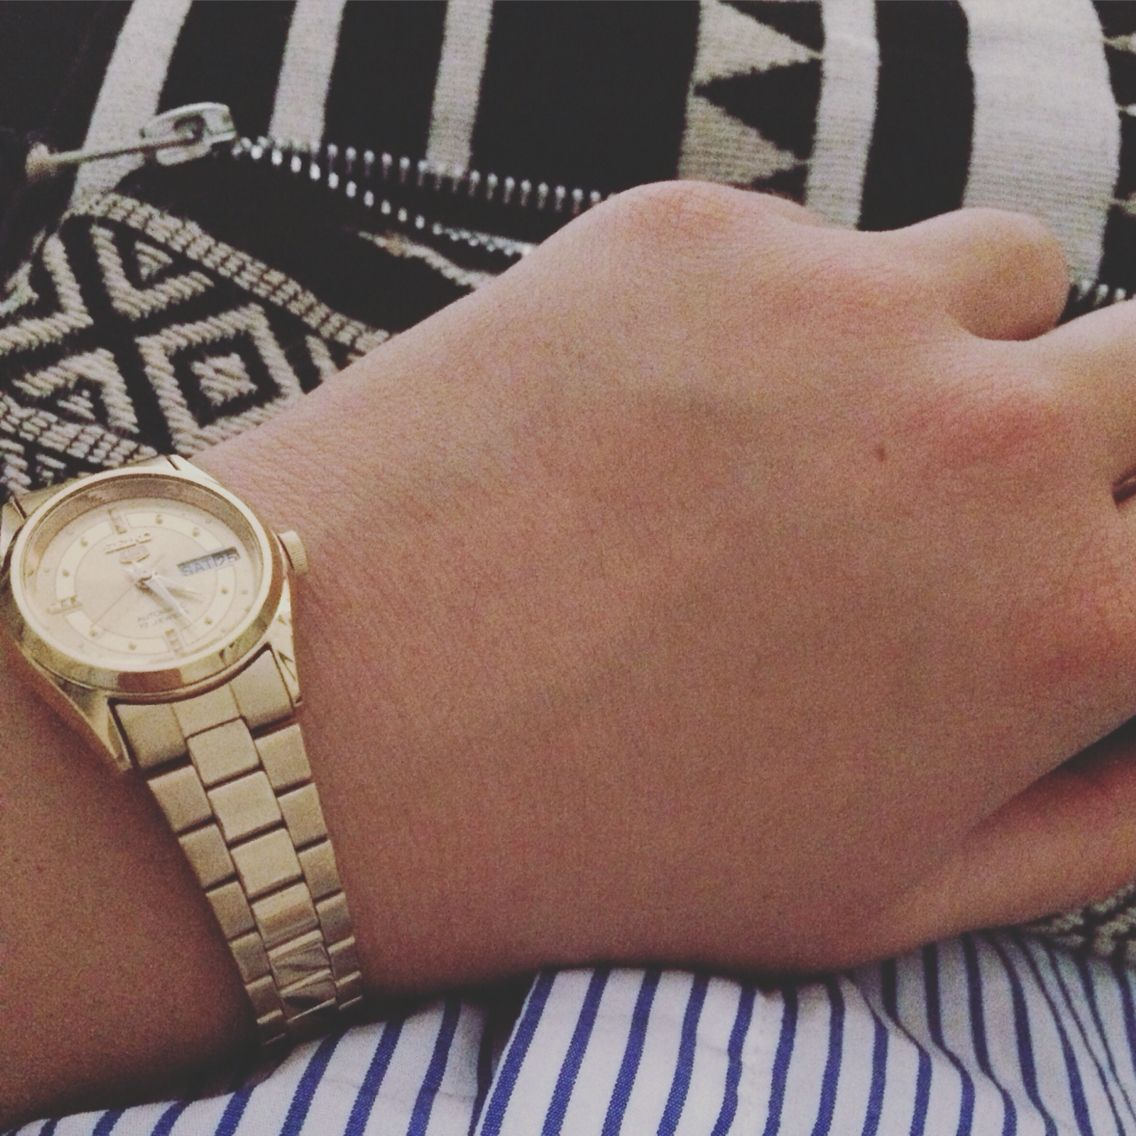 Watch Bag Girly Details